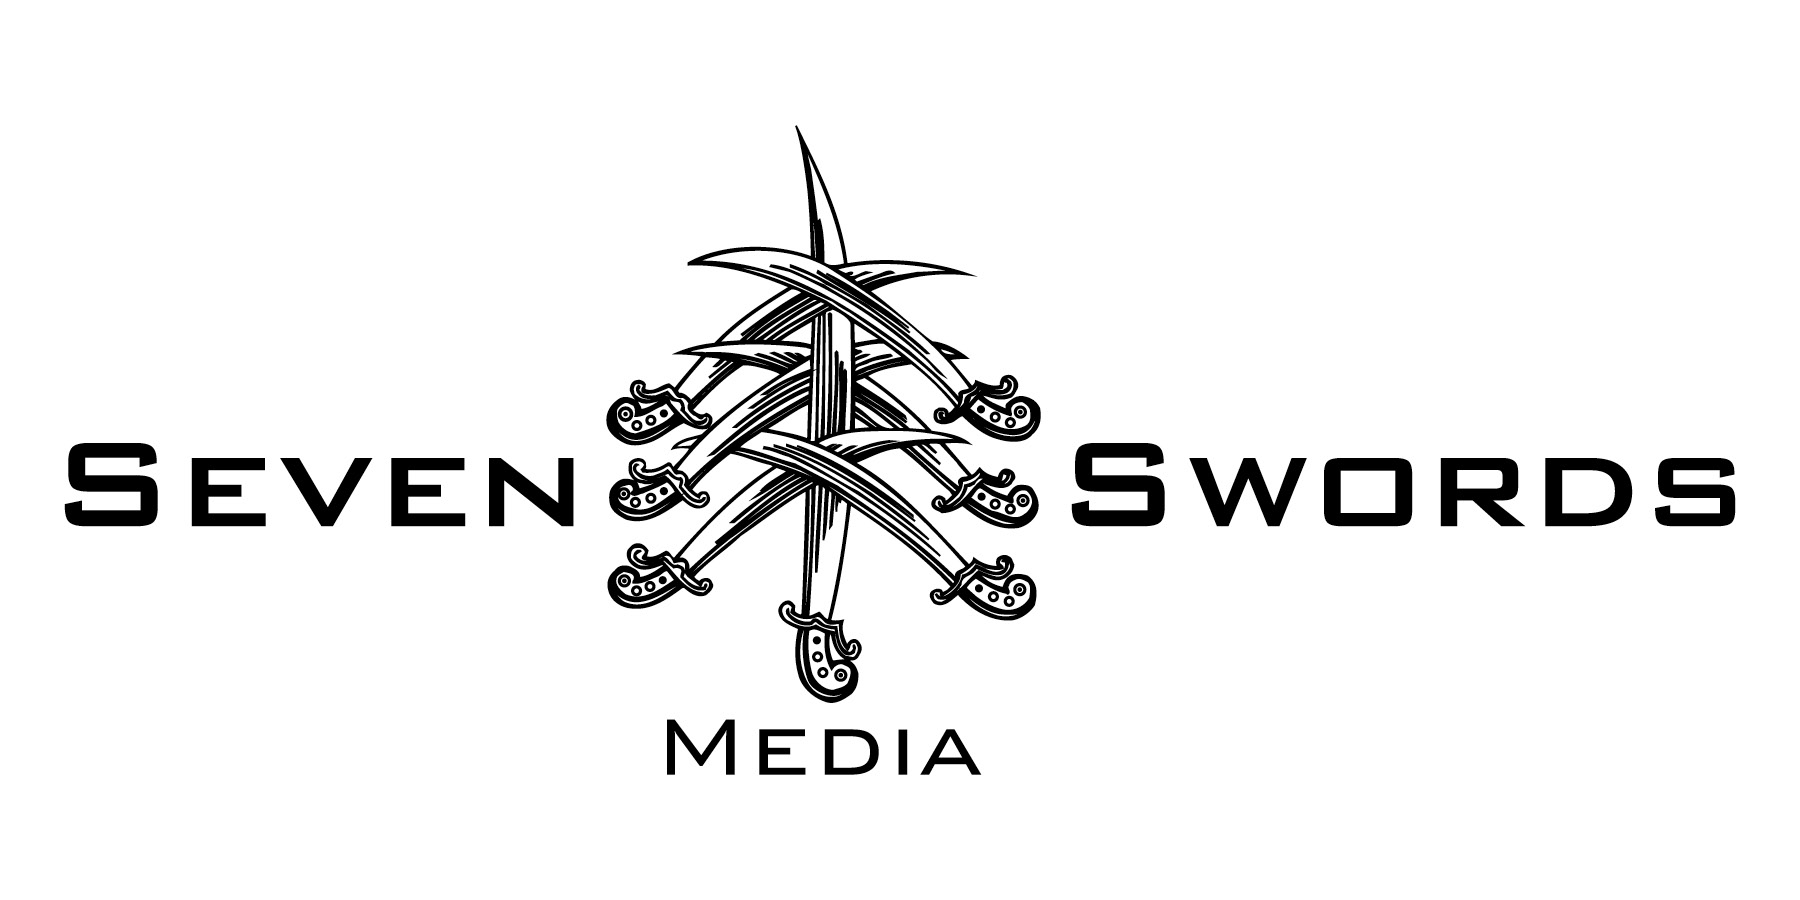 Seven Swords Media